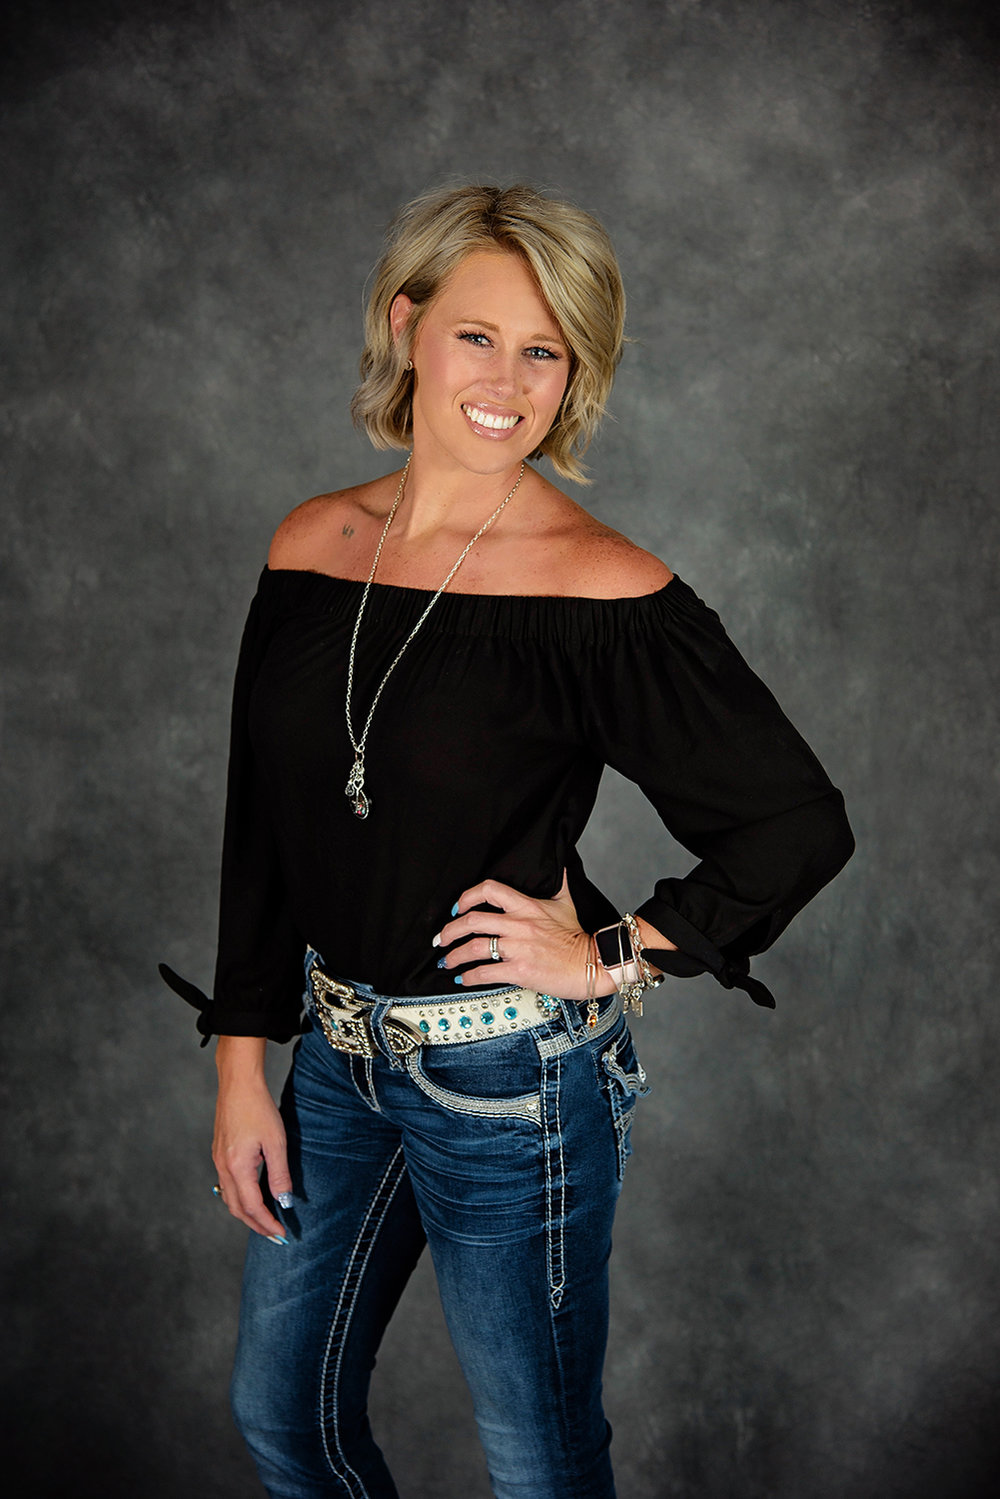 Karie Lacy, Owner of Gussied Up by Karie Michelle in South Lebanon, Ohio